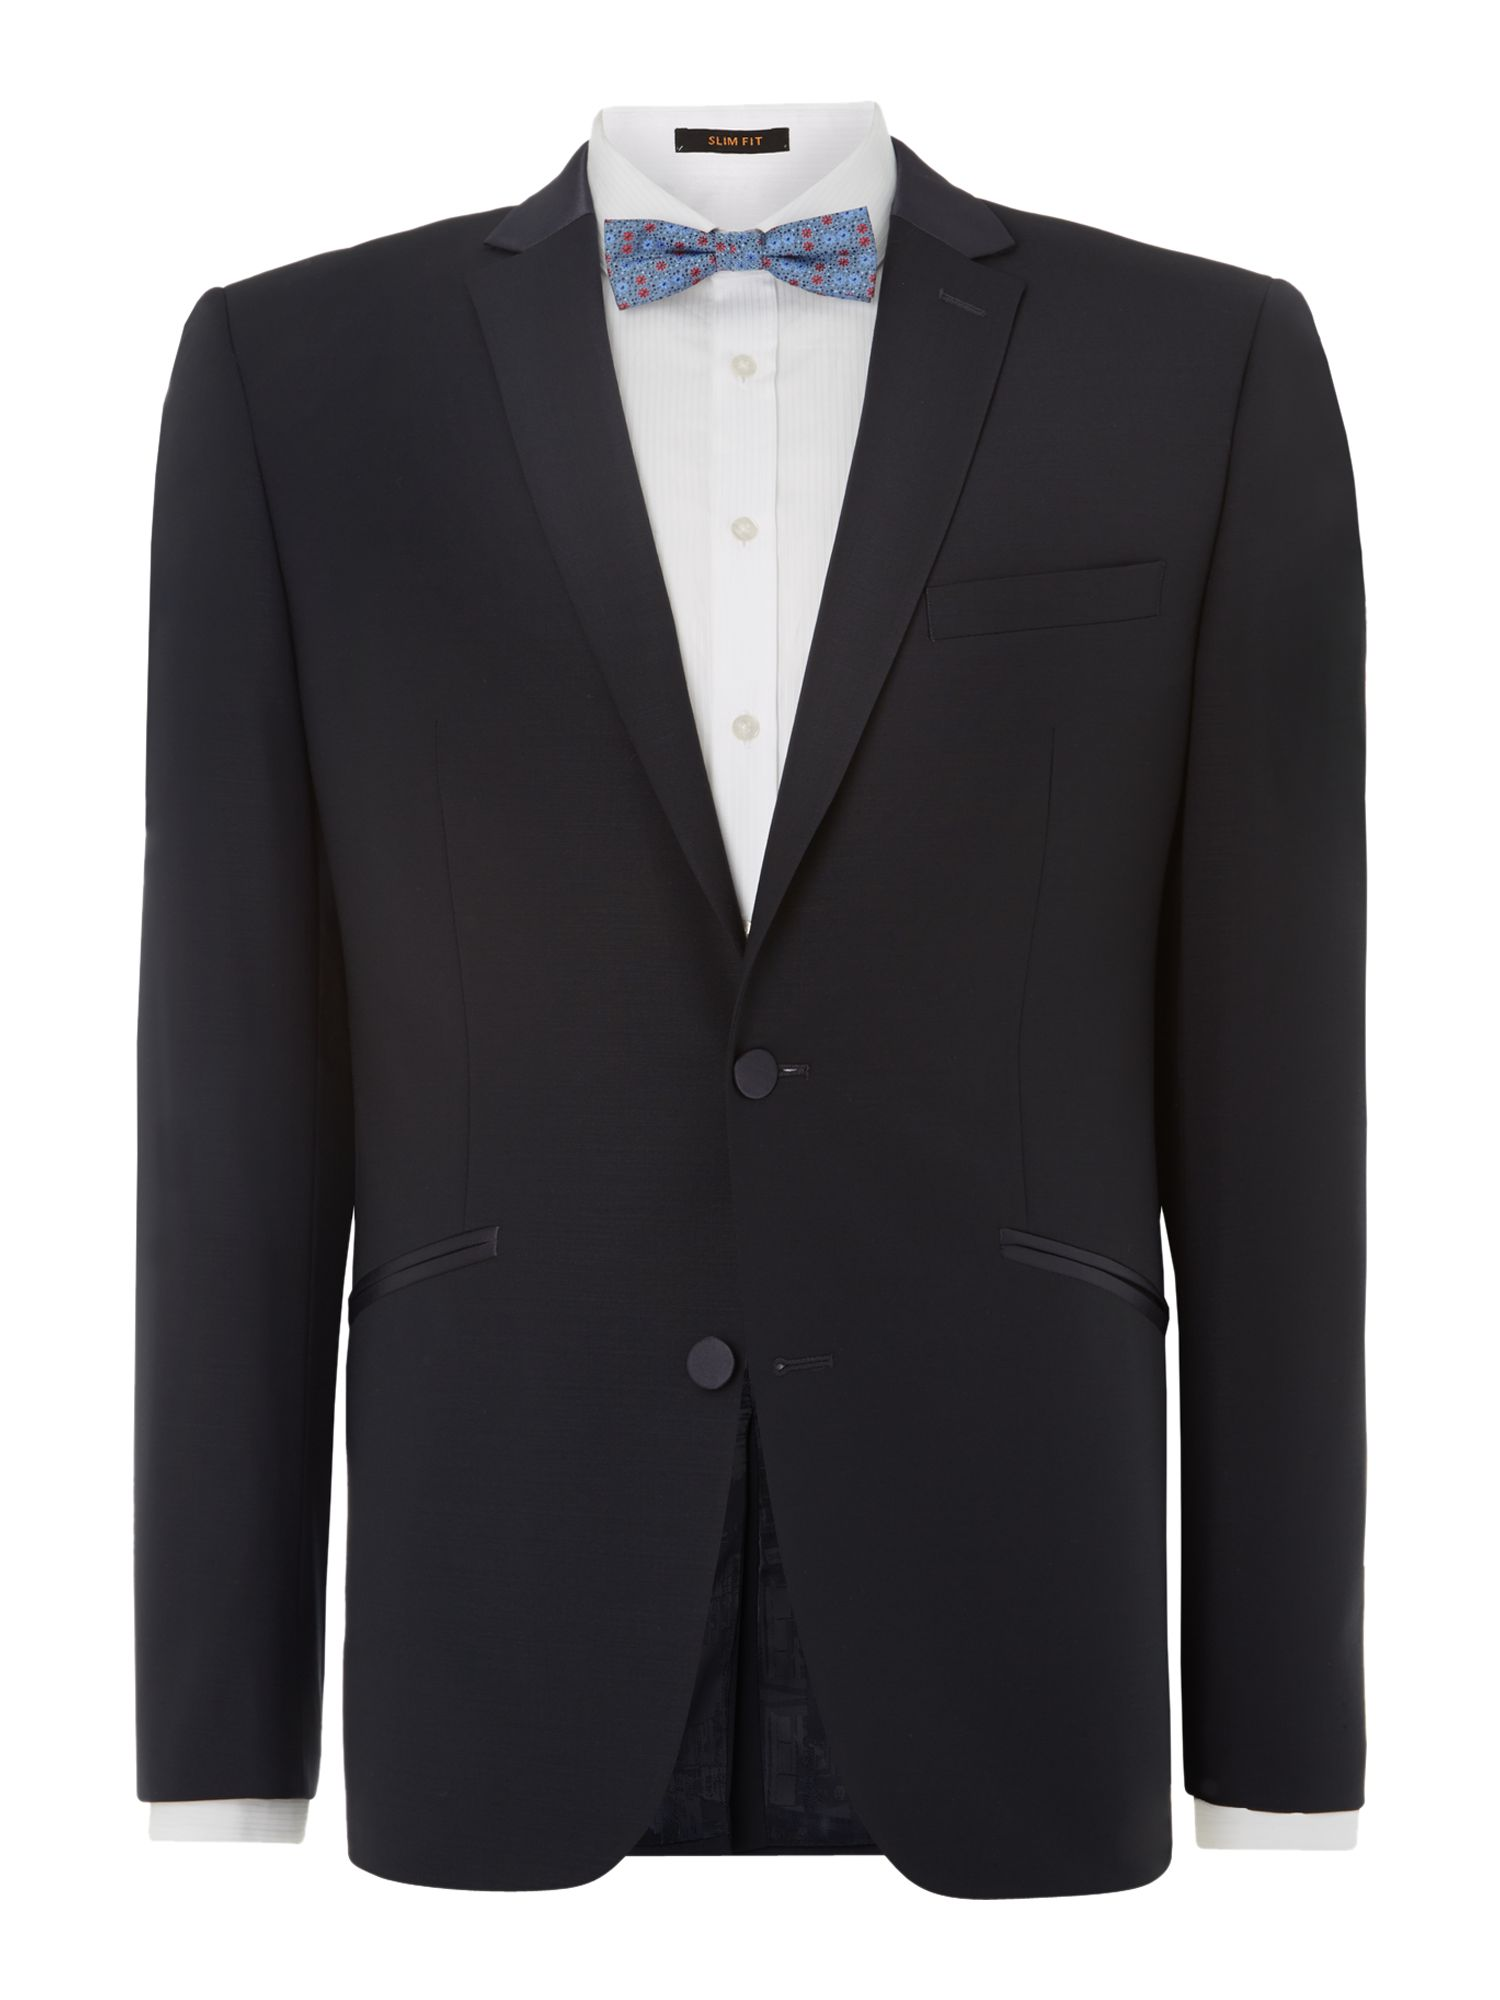 Satin trimmmed slim fit dinner suit